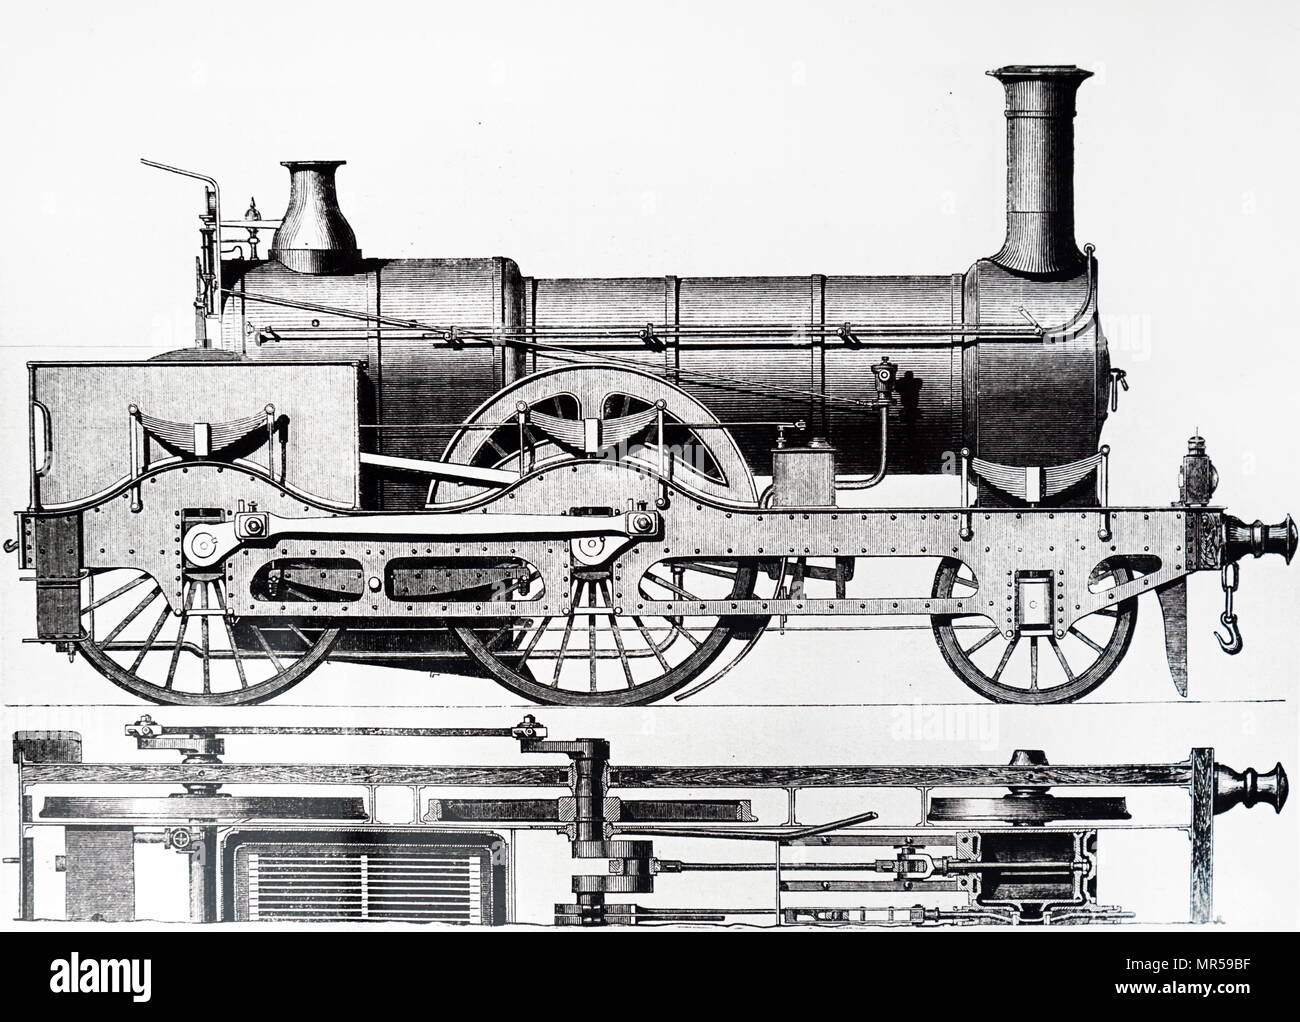 Engraving depicting a 2-4-0 locomotive for the Great Northern Railway designed by Archibald Sturrock and built by J. Fowler & Co., of Leeds. Archibald Sturrock (1816-1909) a Scottish mechanical engineer who was born at Petruchie, Angus, Scotland. Dated 19th century - Stock Image